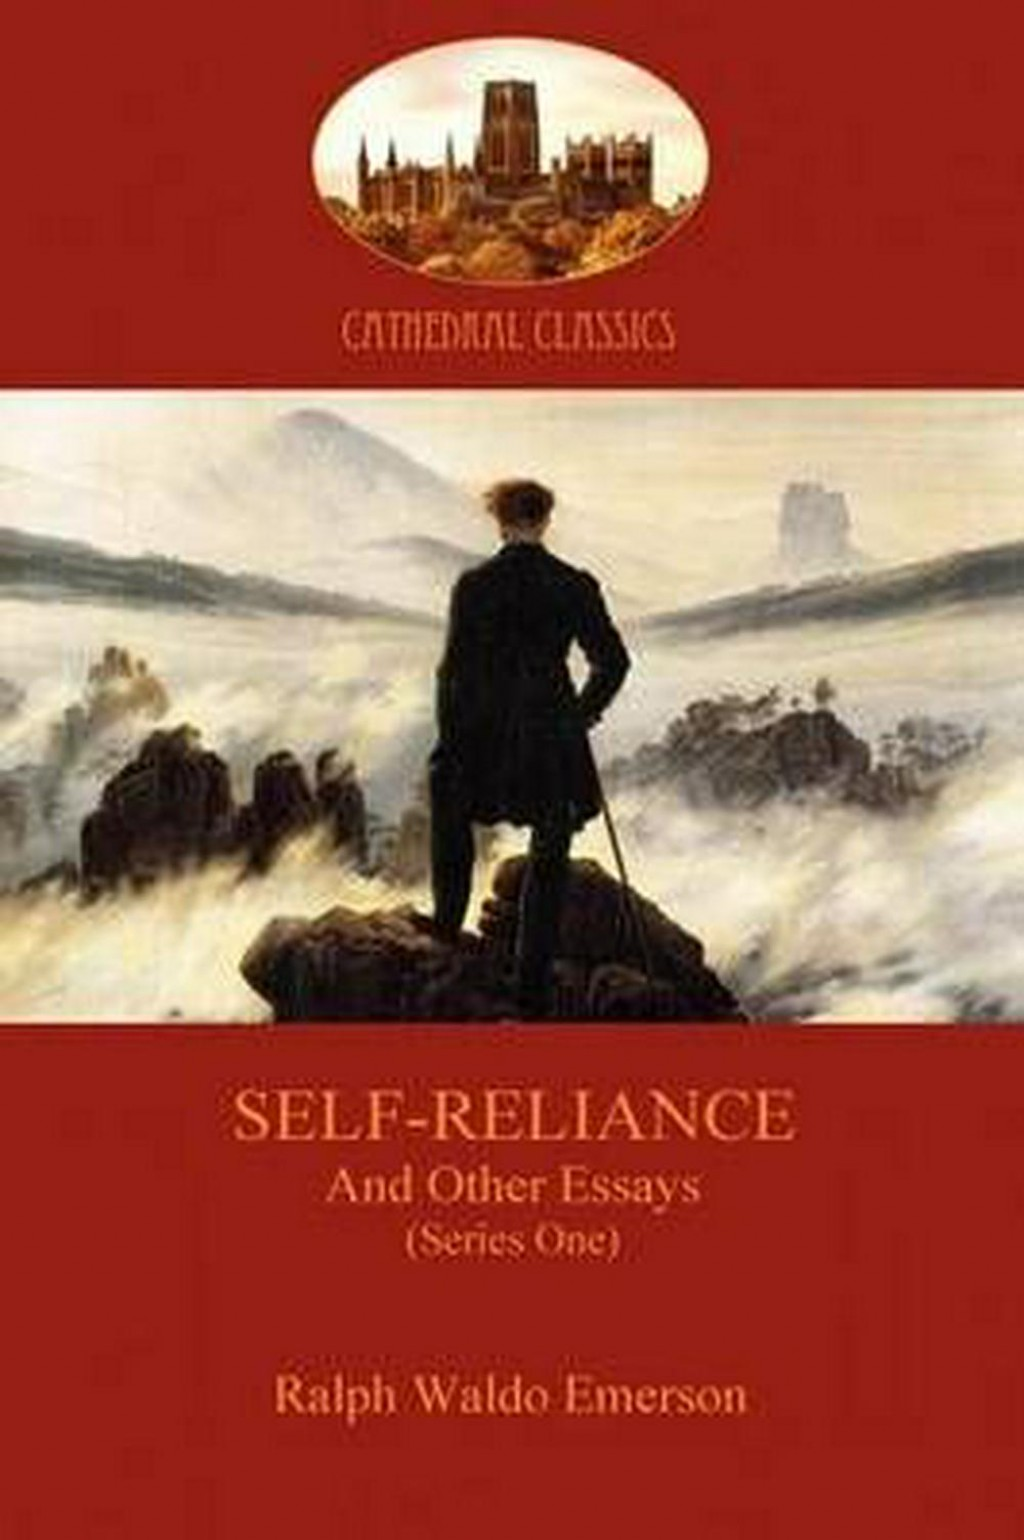 015 Essay Example Self Reliance And Other Essays Formidable Ralph Waldo Emerson Pdf Ekşi Large